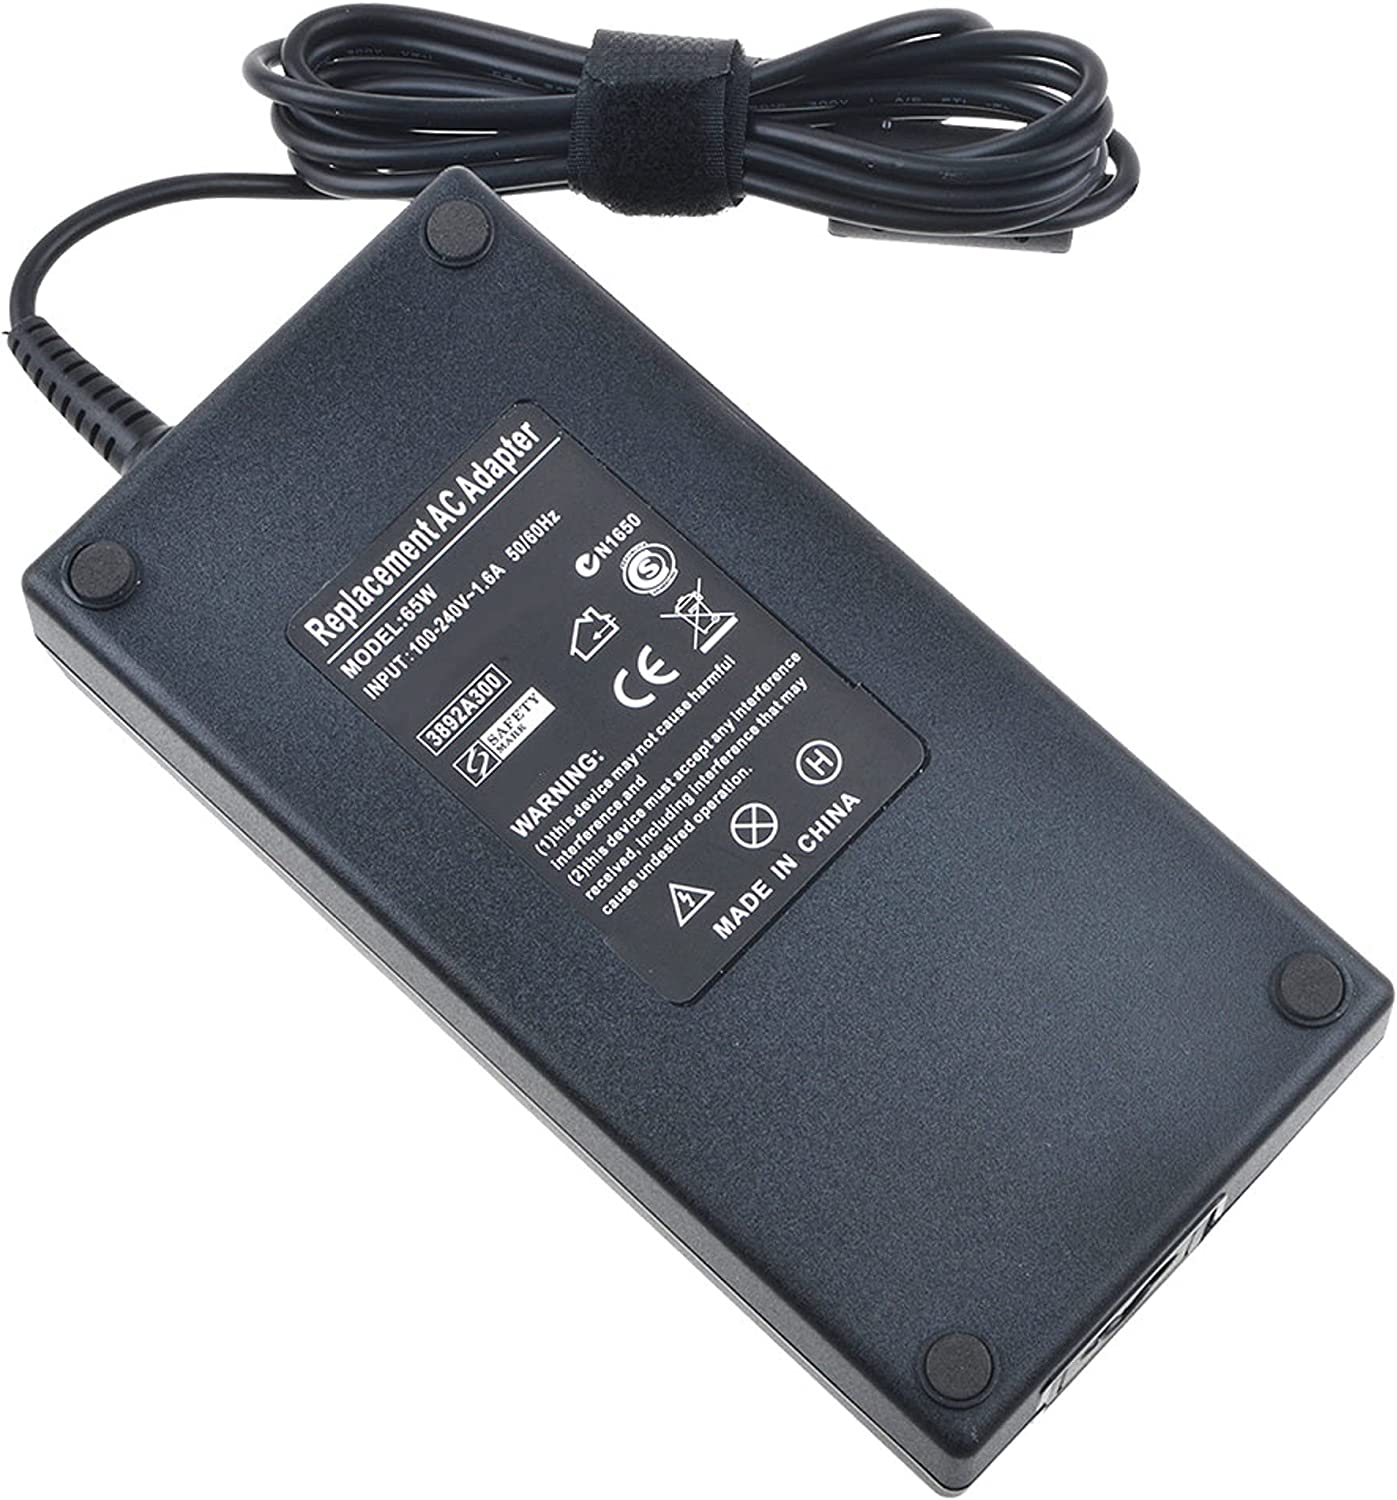 Digipartspower 19V 6.3A 120W AC/DC Adapter for Acer Liteon PA-1121-04 PA112104 Laptop Notebook PC 19VDC 6.3A Power Supply Cord Cable Battery Charger Mains PSU